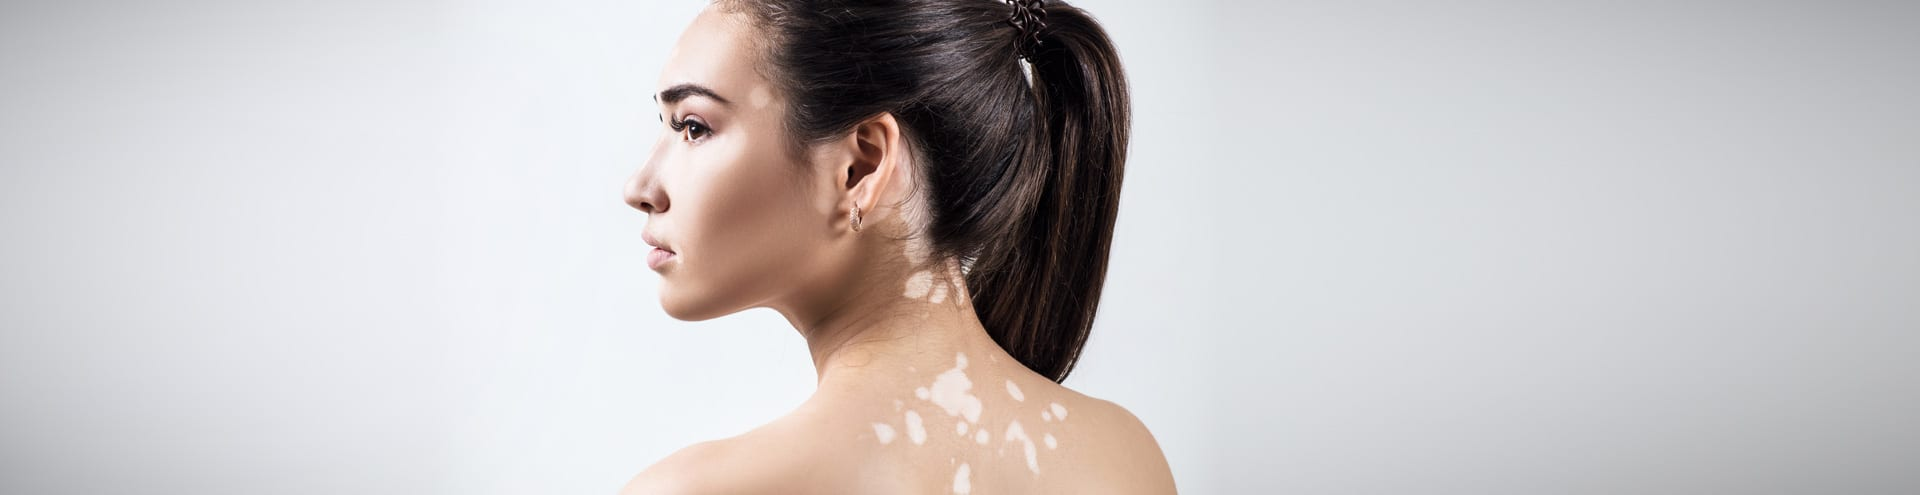 Vitiligo (or patches of white skin) is a common condition treated successfully by Dr. Max Adler at Max Adler Dermatology in Plano and Dallas TX.